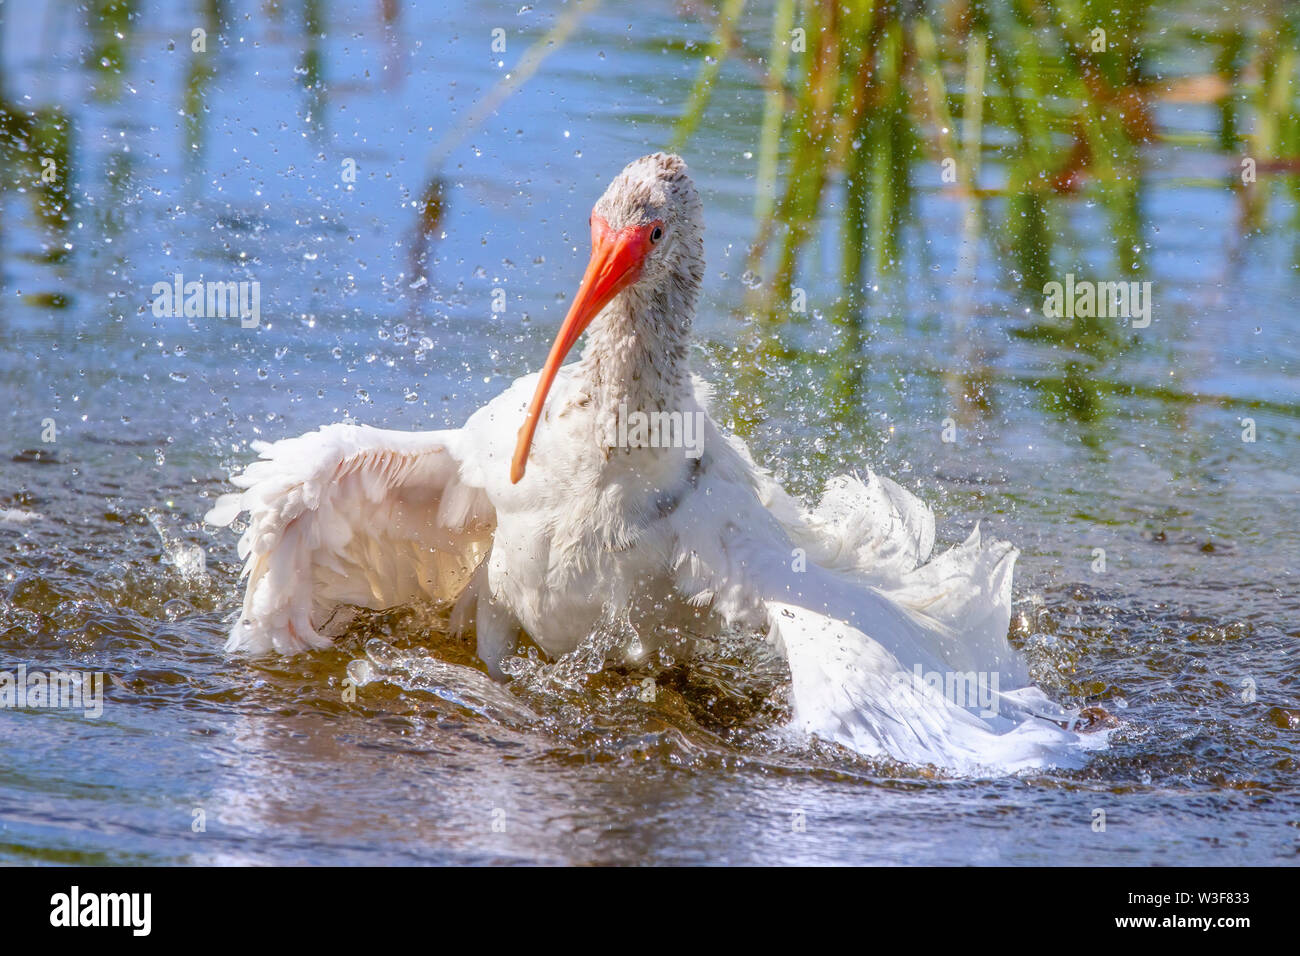 A White Ibis in the Florida Everglades seems to be enjoying itself as it takes a bath in a shallow creek. - Stock Image